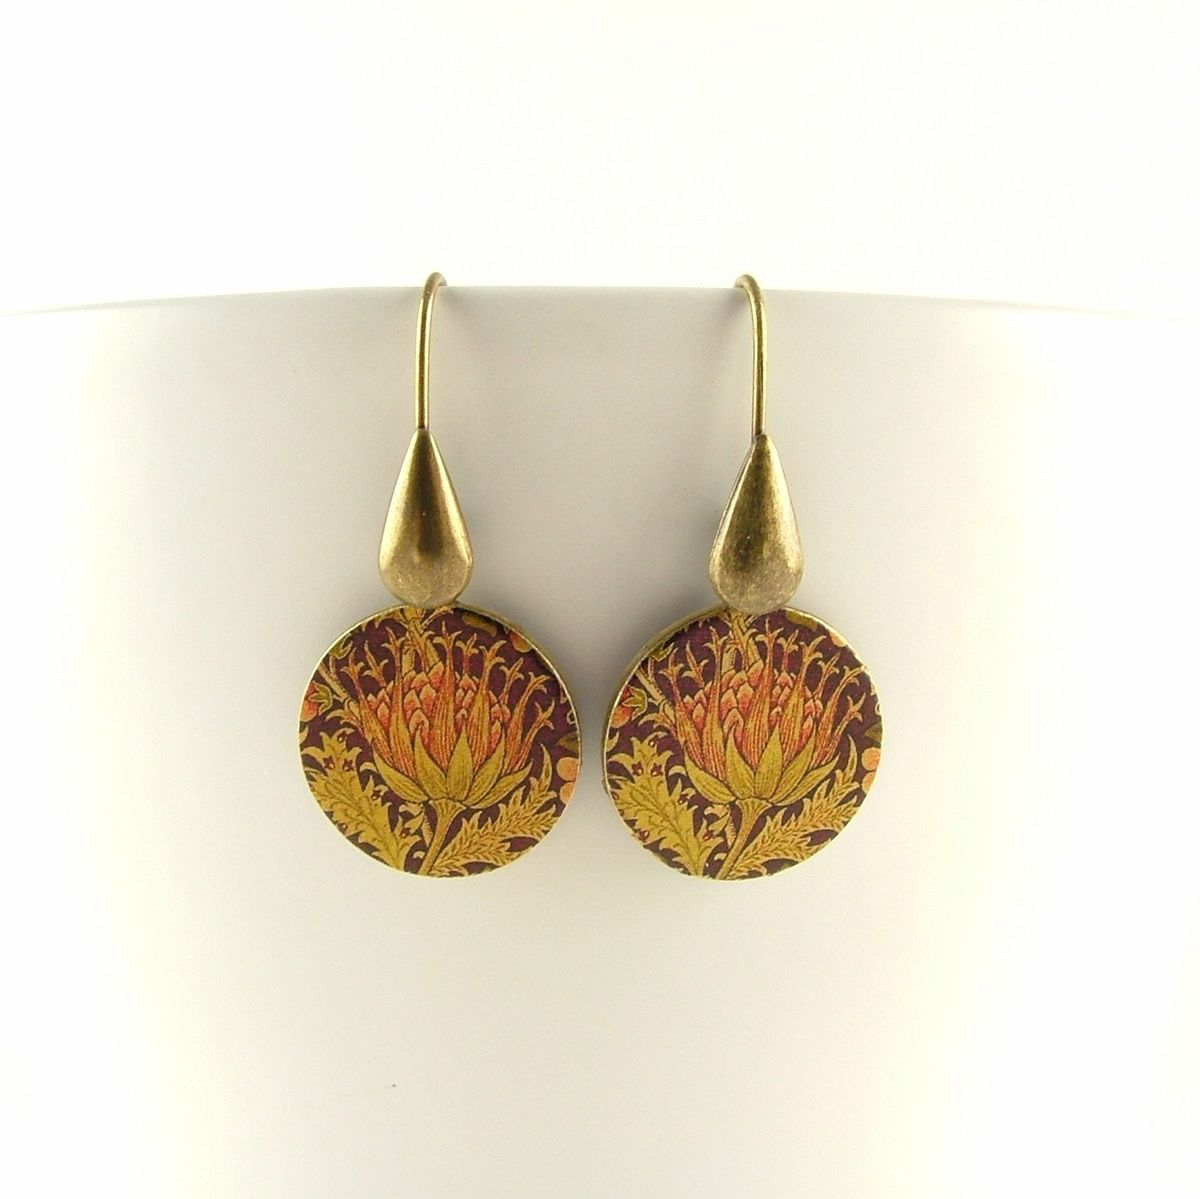 William Morris Artichoke Round Earrings - product images  of